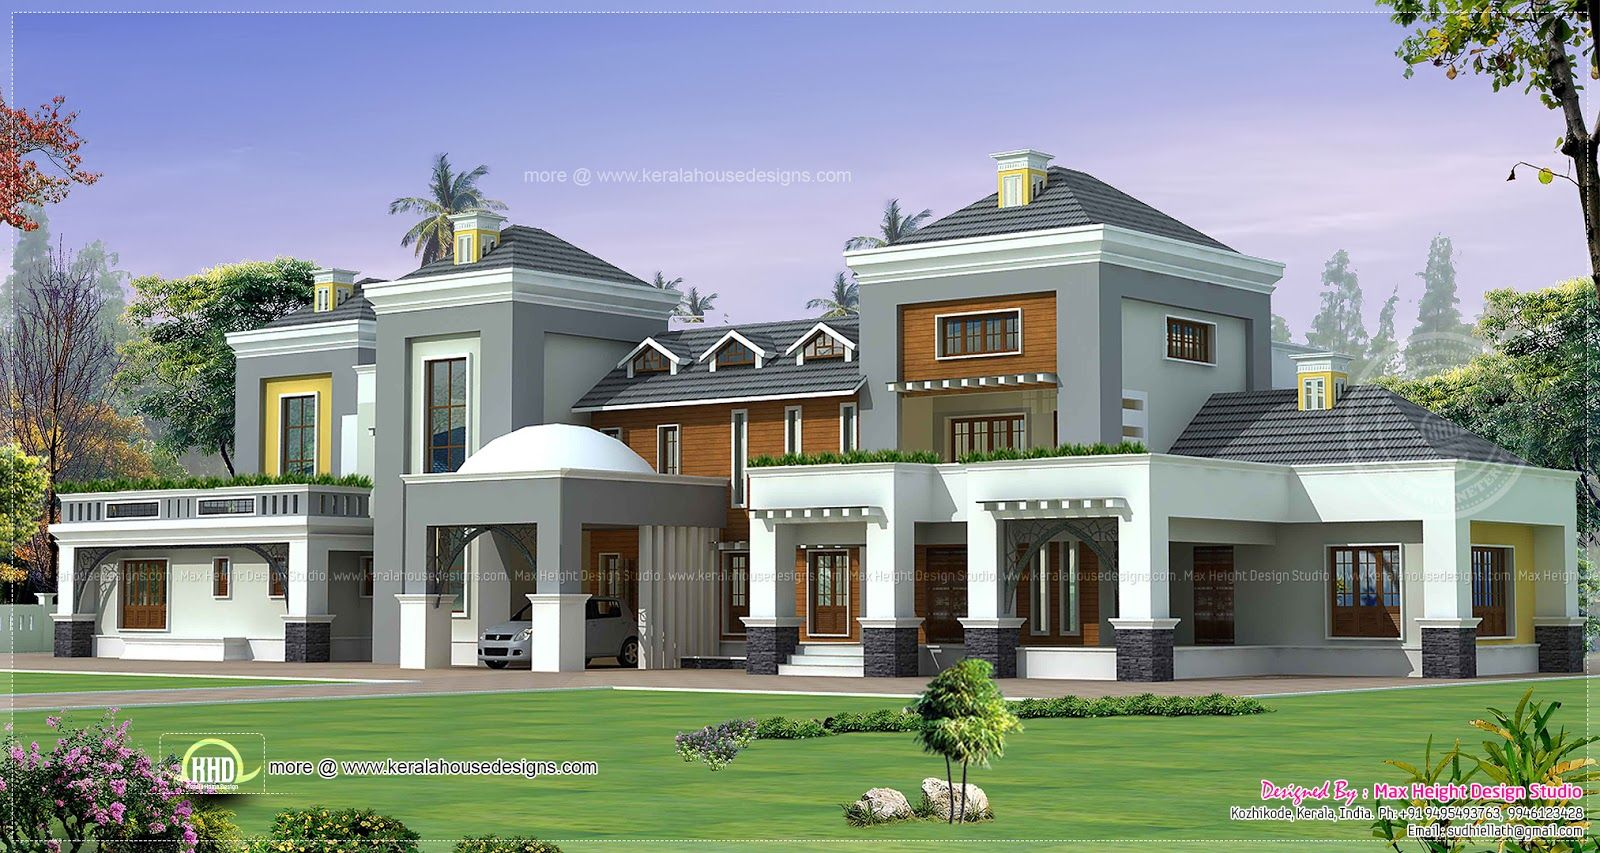 Most expensive fancy houses in the world fancyhouses tags house design modern house building a house big house mansion house how to build a house house